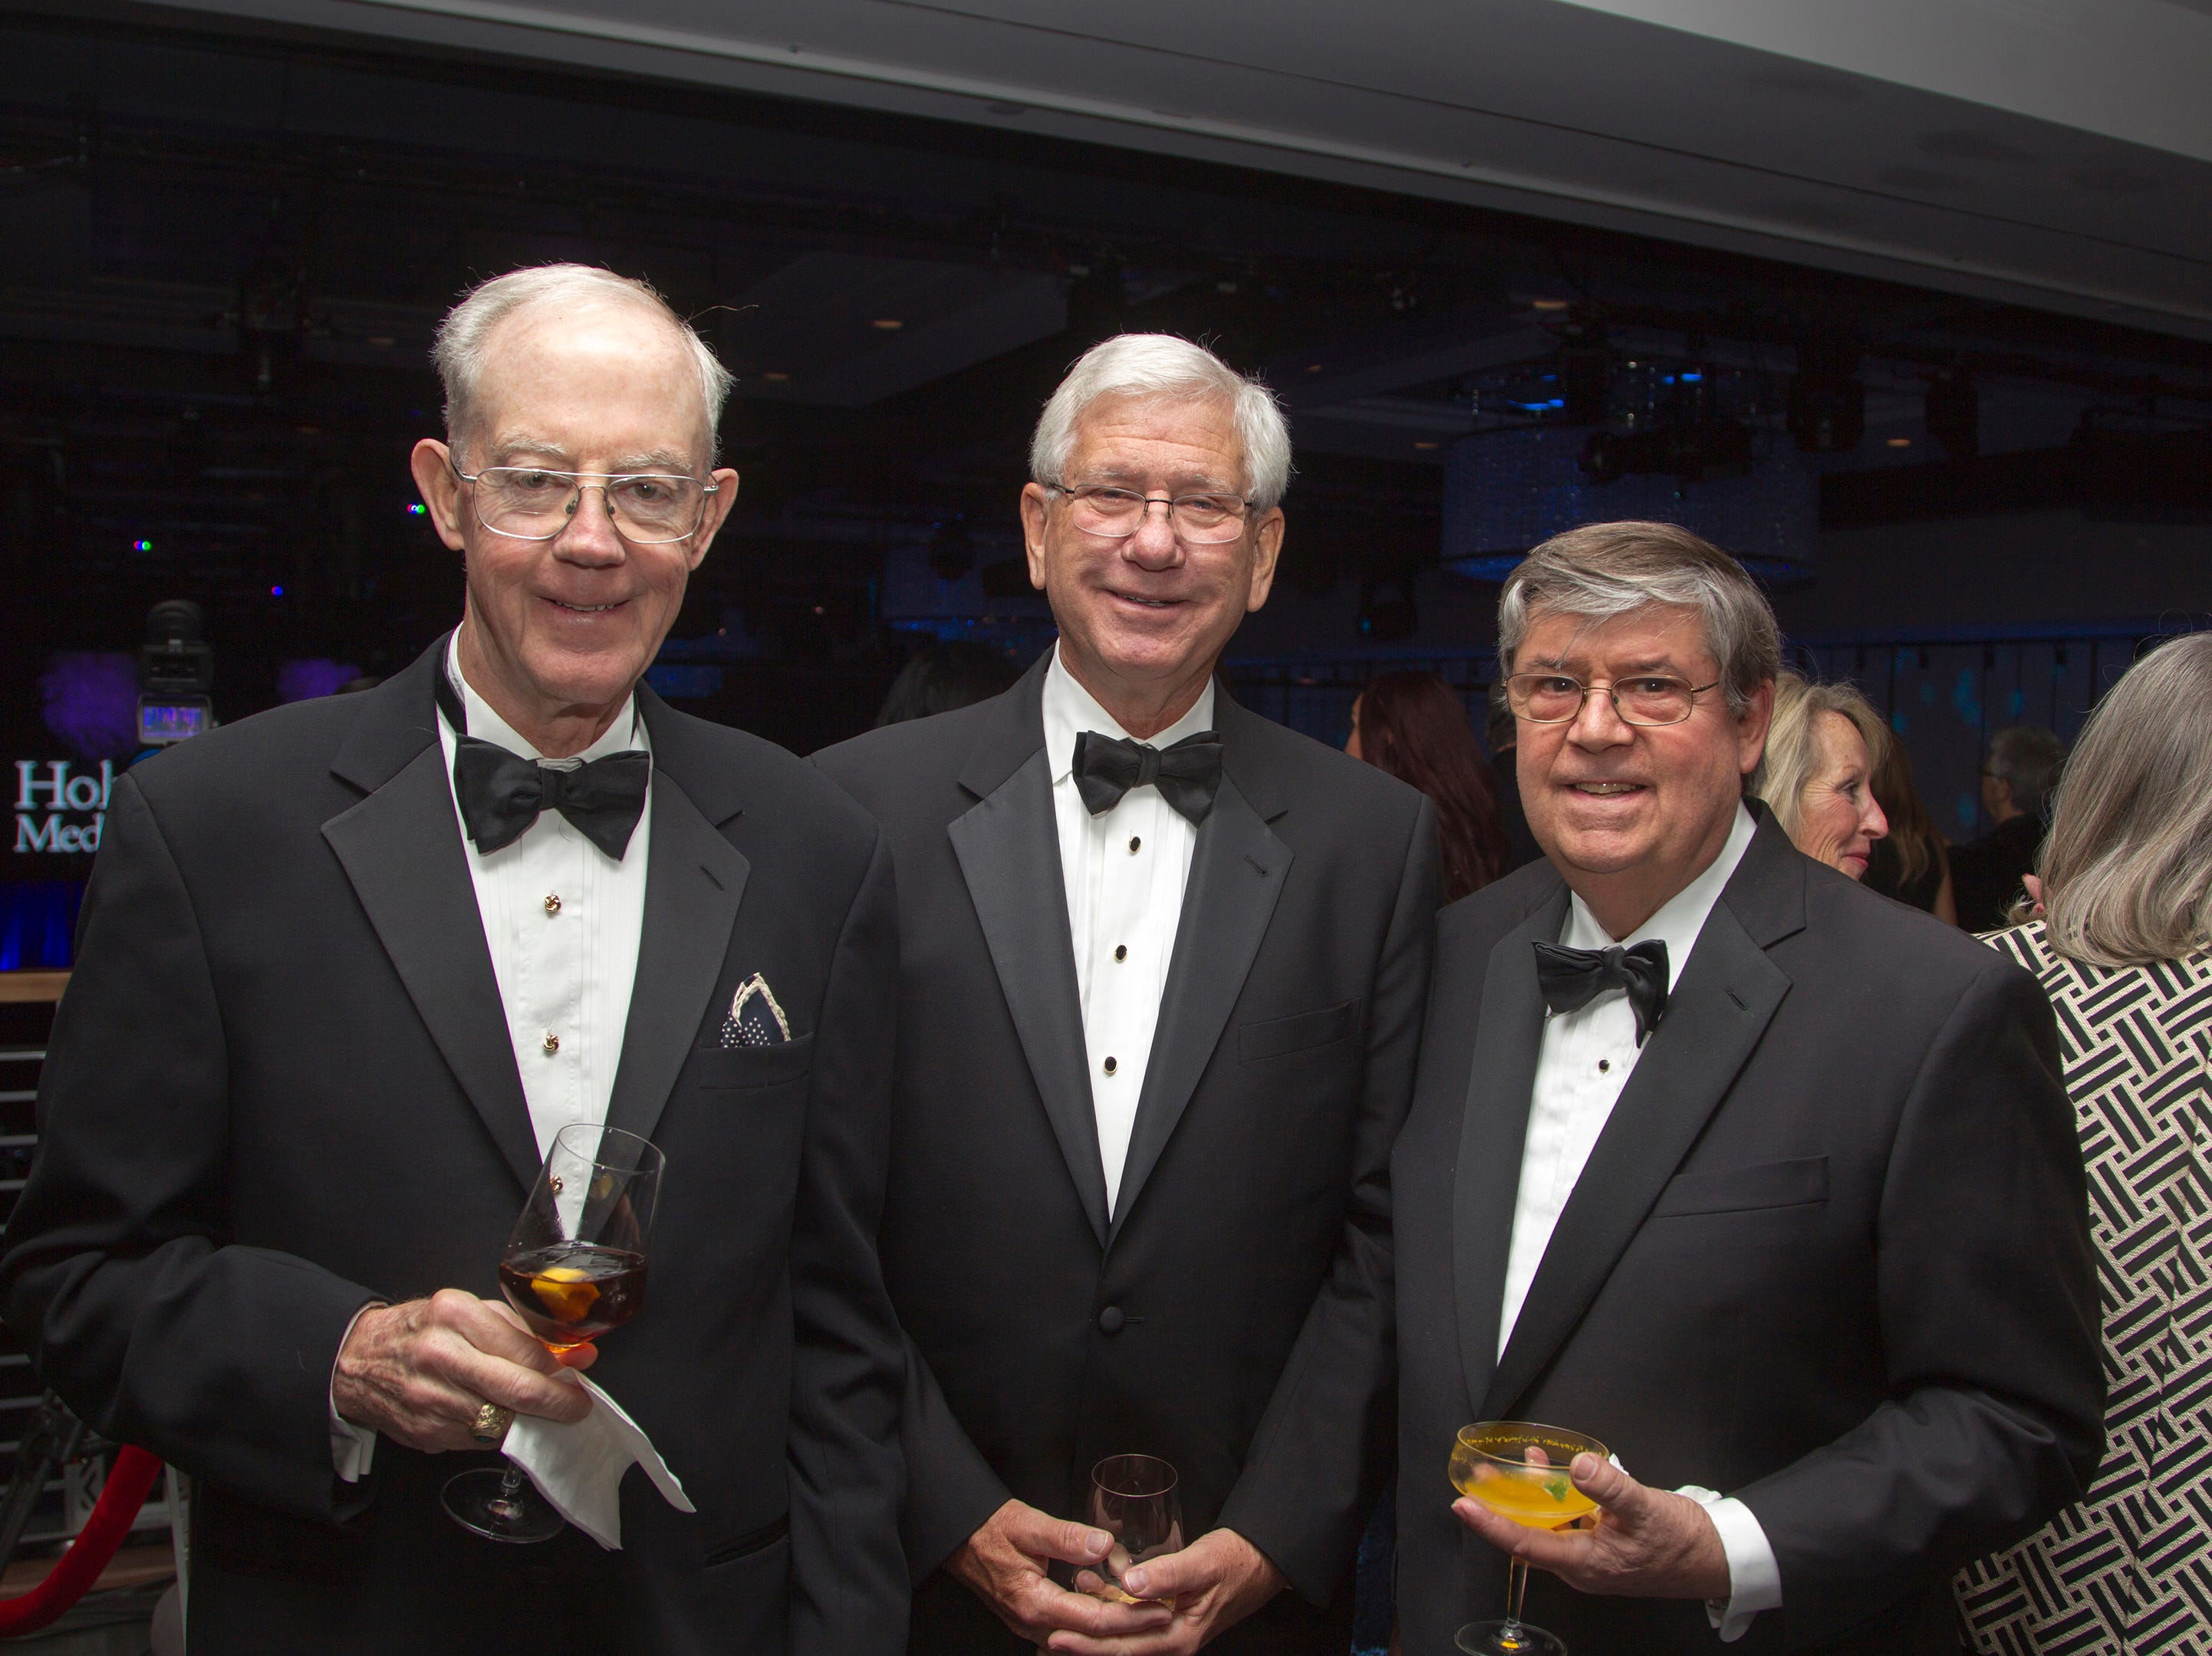 Jack Geraghty, Don Monks, Drew Watson. Holy Name Medical Center held its 2018 Founders Ball in NYC at Ziegfeld Ballroom. 11/17/2018